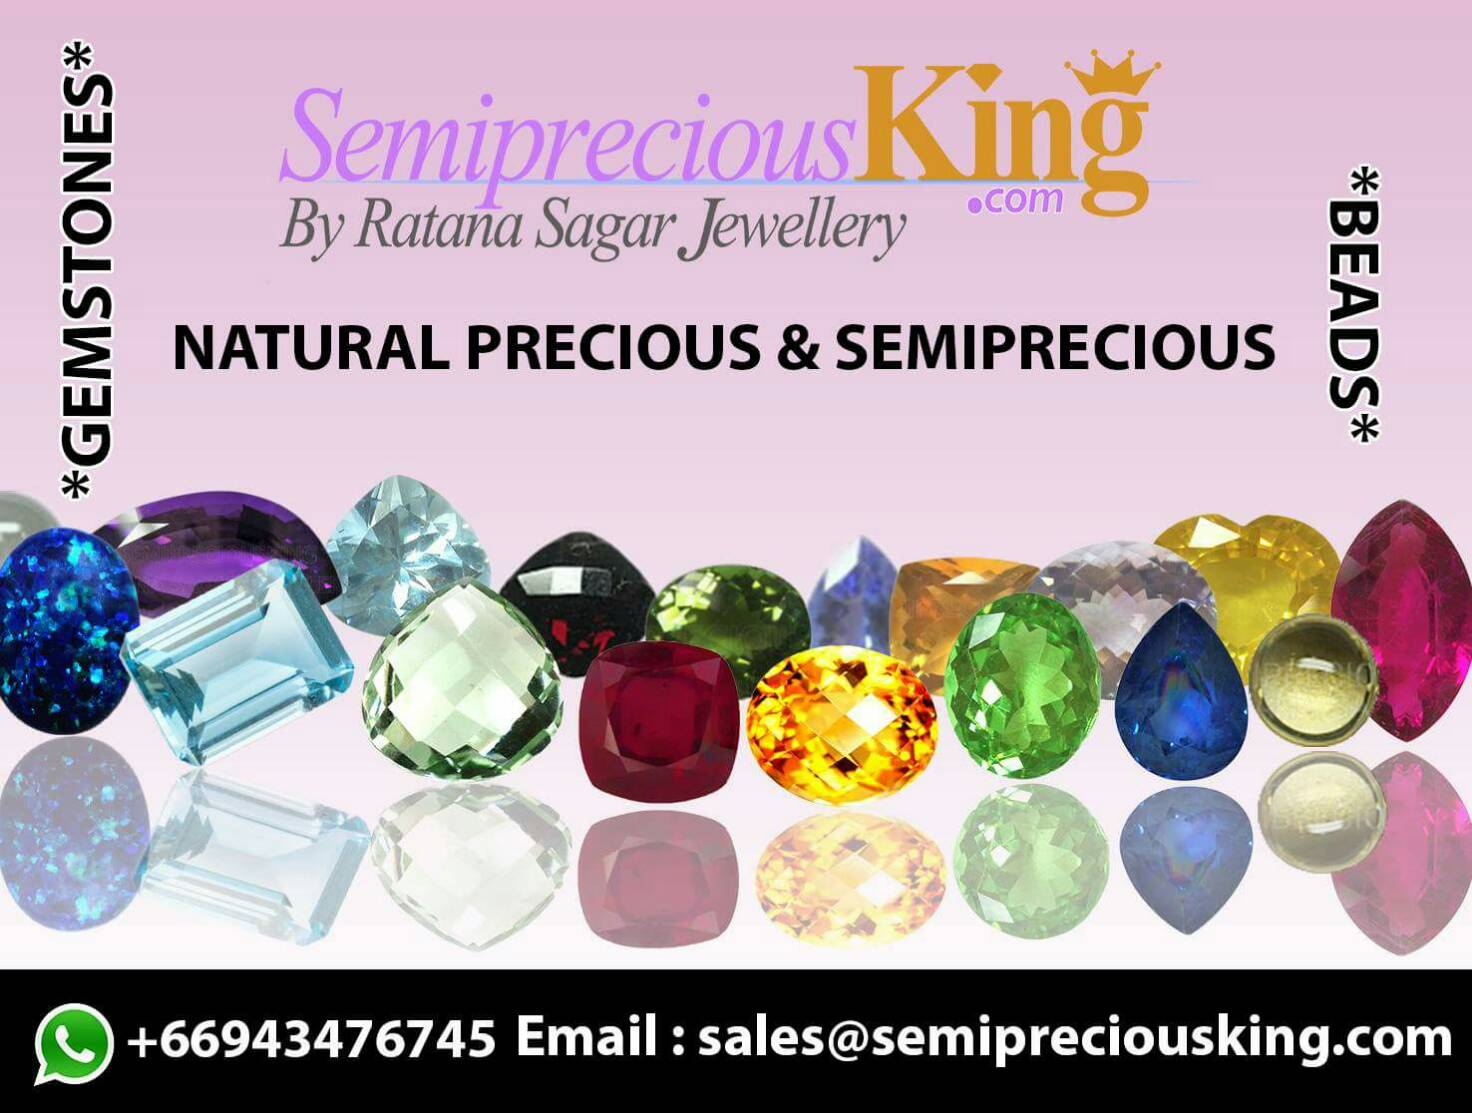 http://gemwow.com/Product/ProductList.aspx?store=334